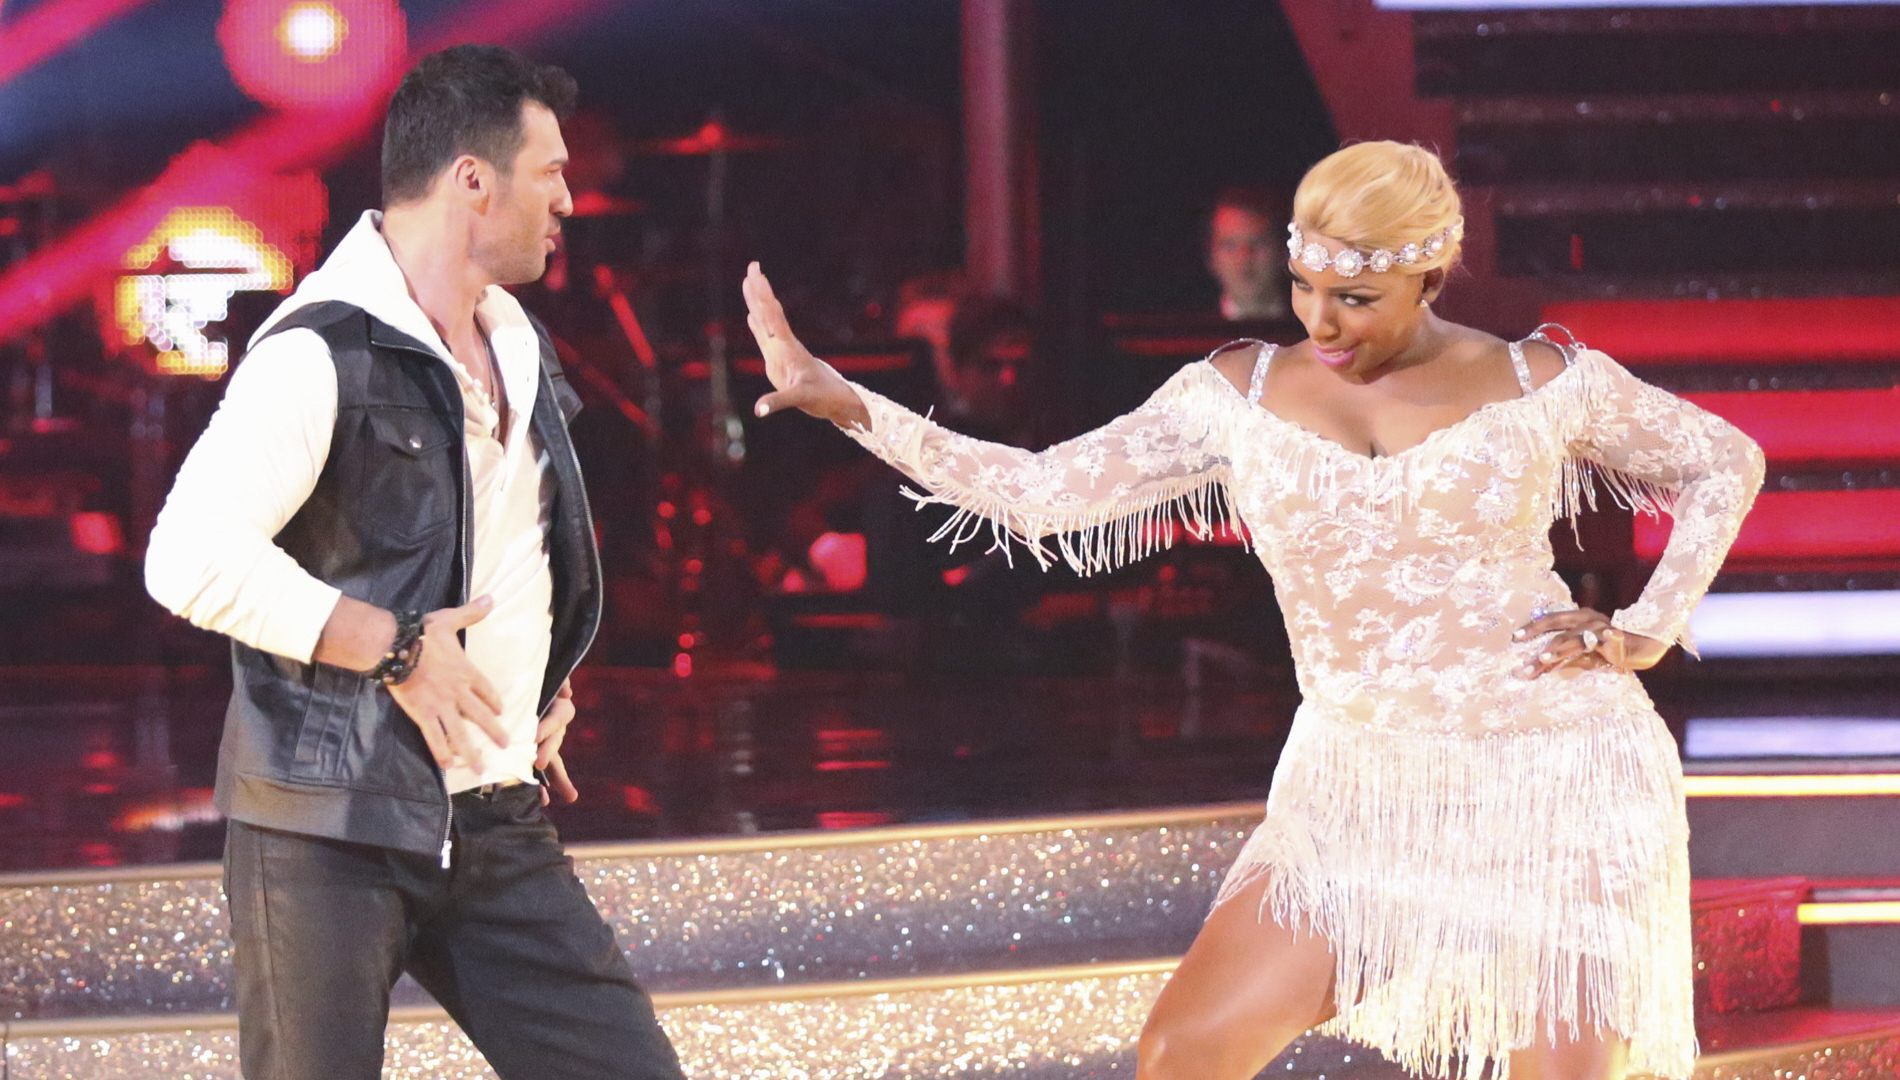 Confusion dancing with the stars celebs shocked by their own dance